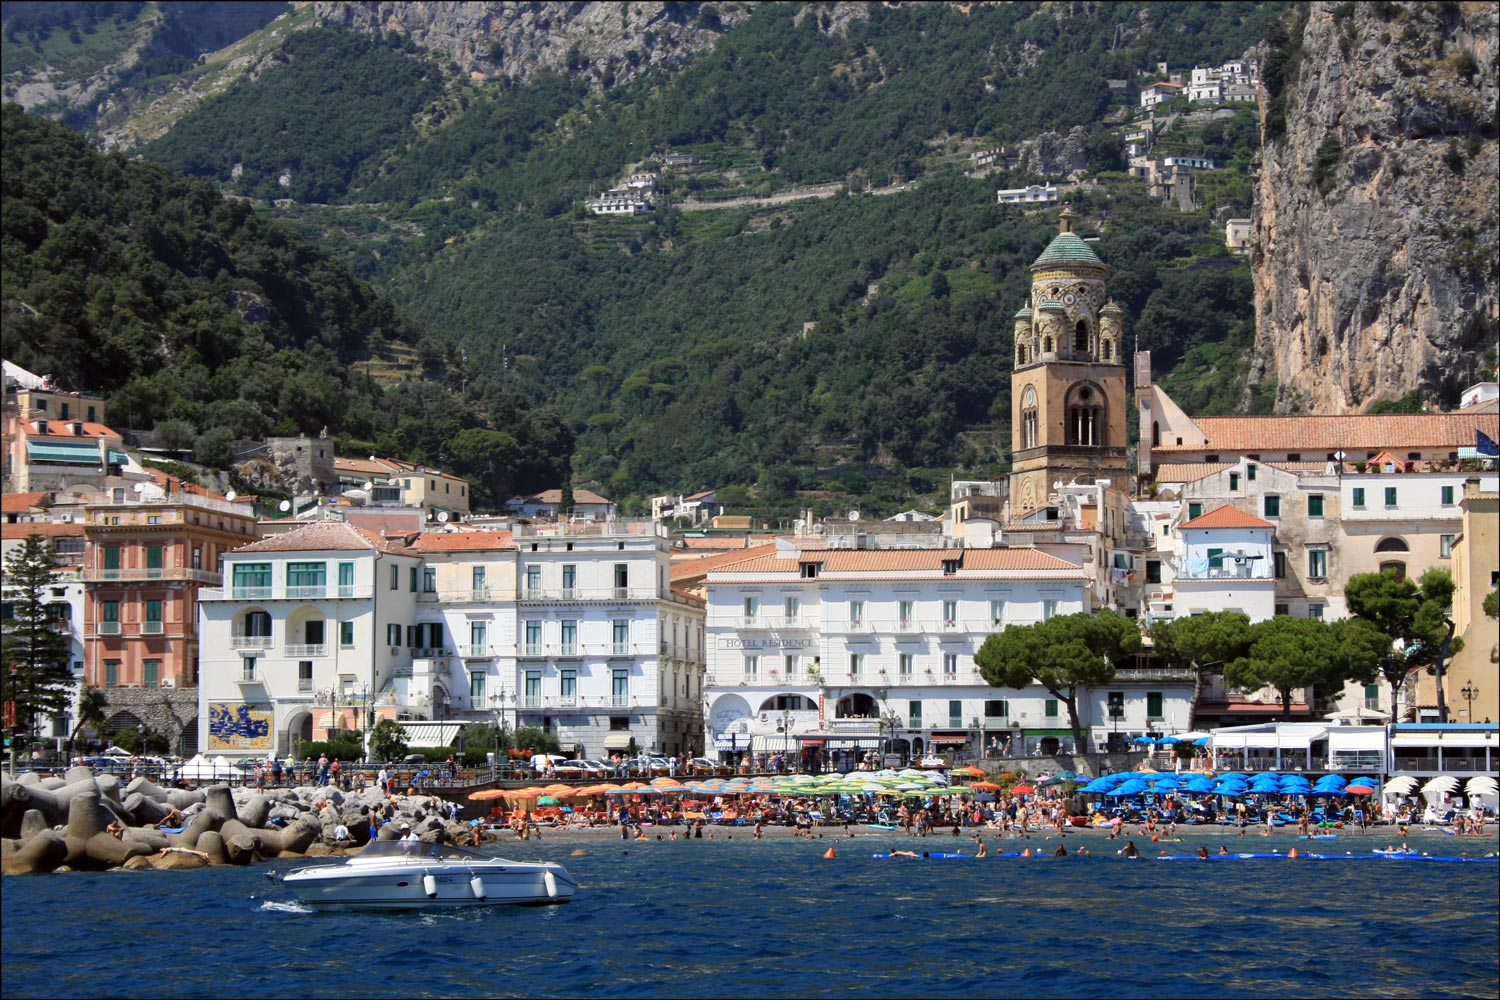 Amalfi and the Cathedral of St. Andrew